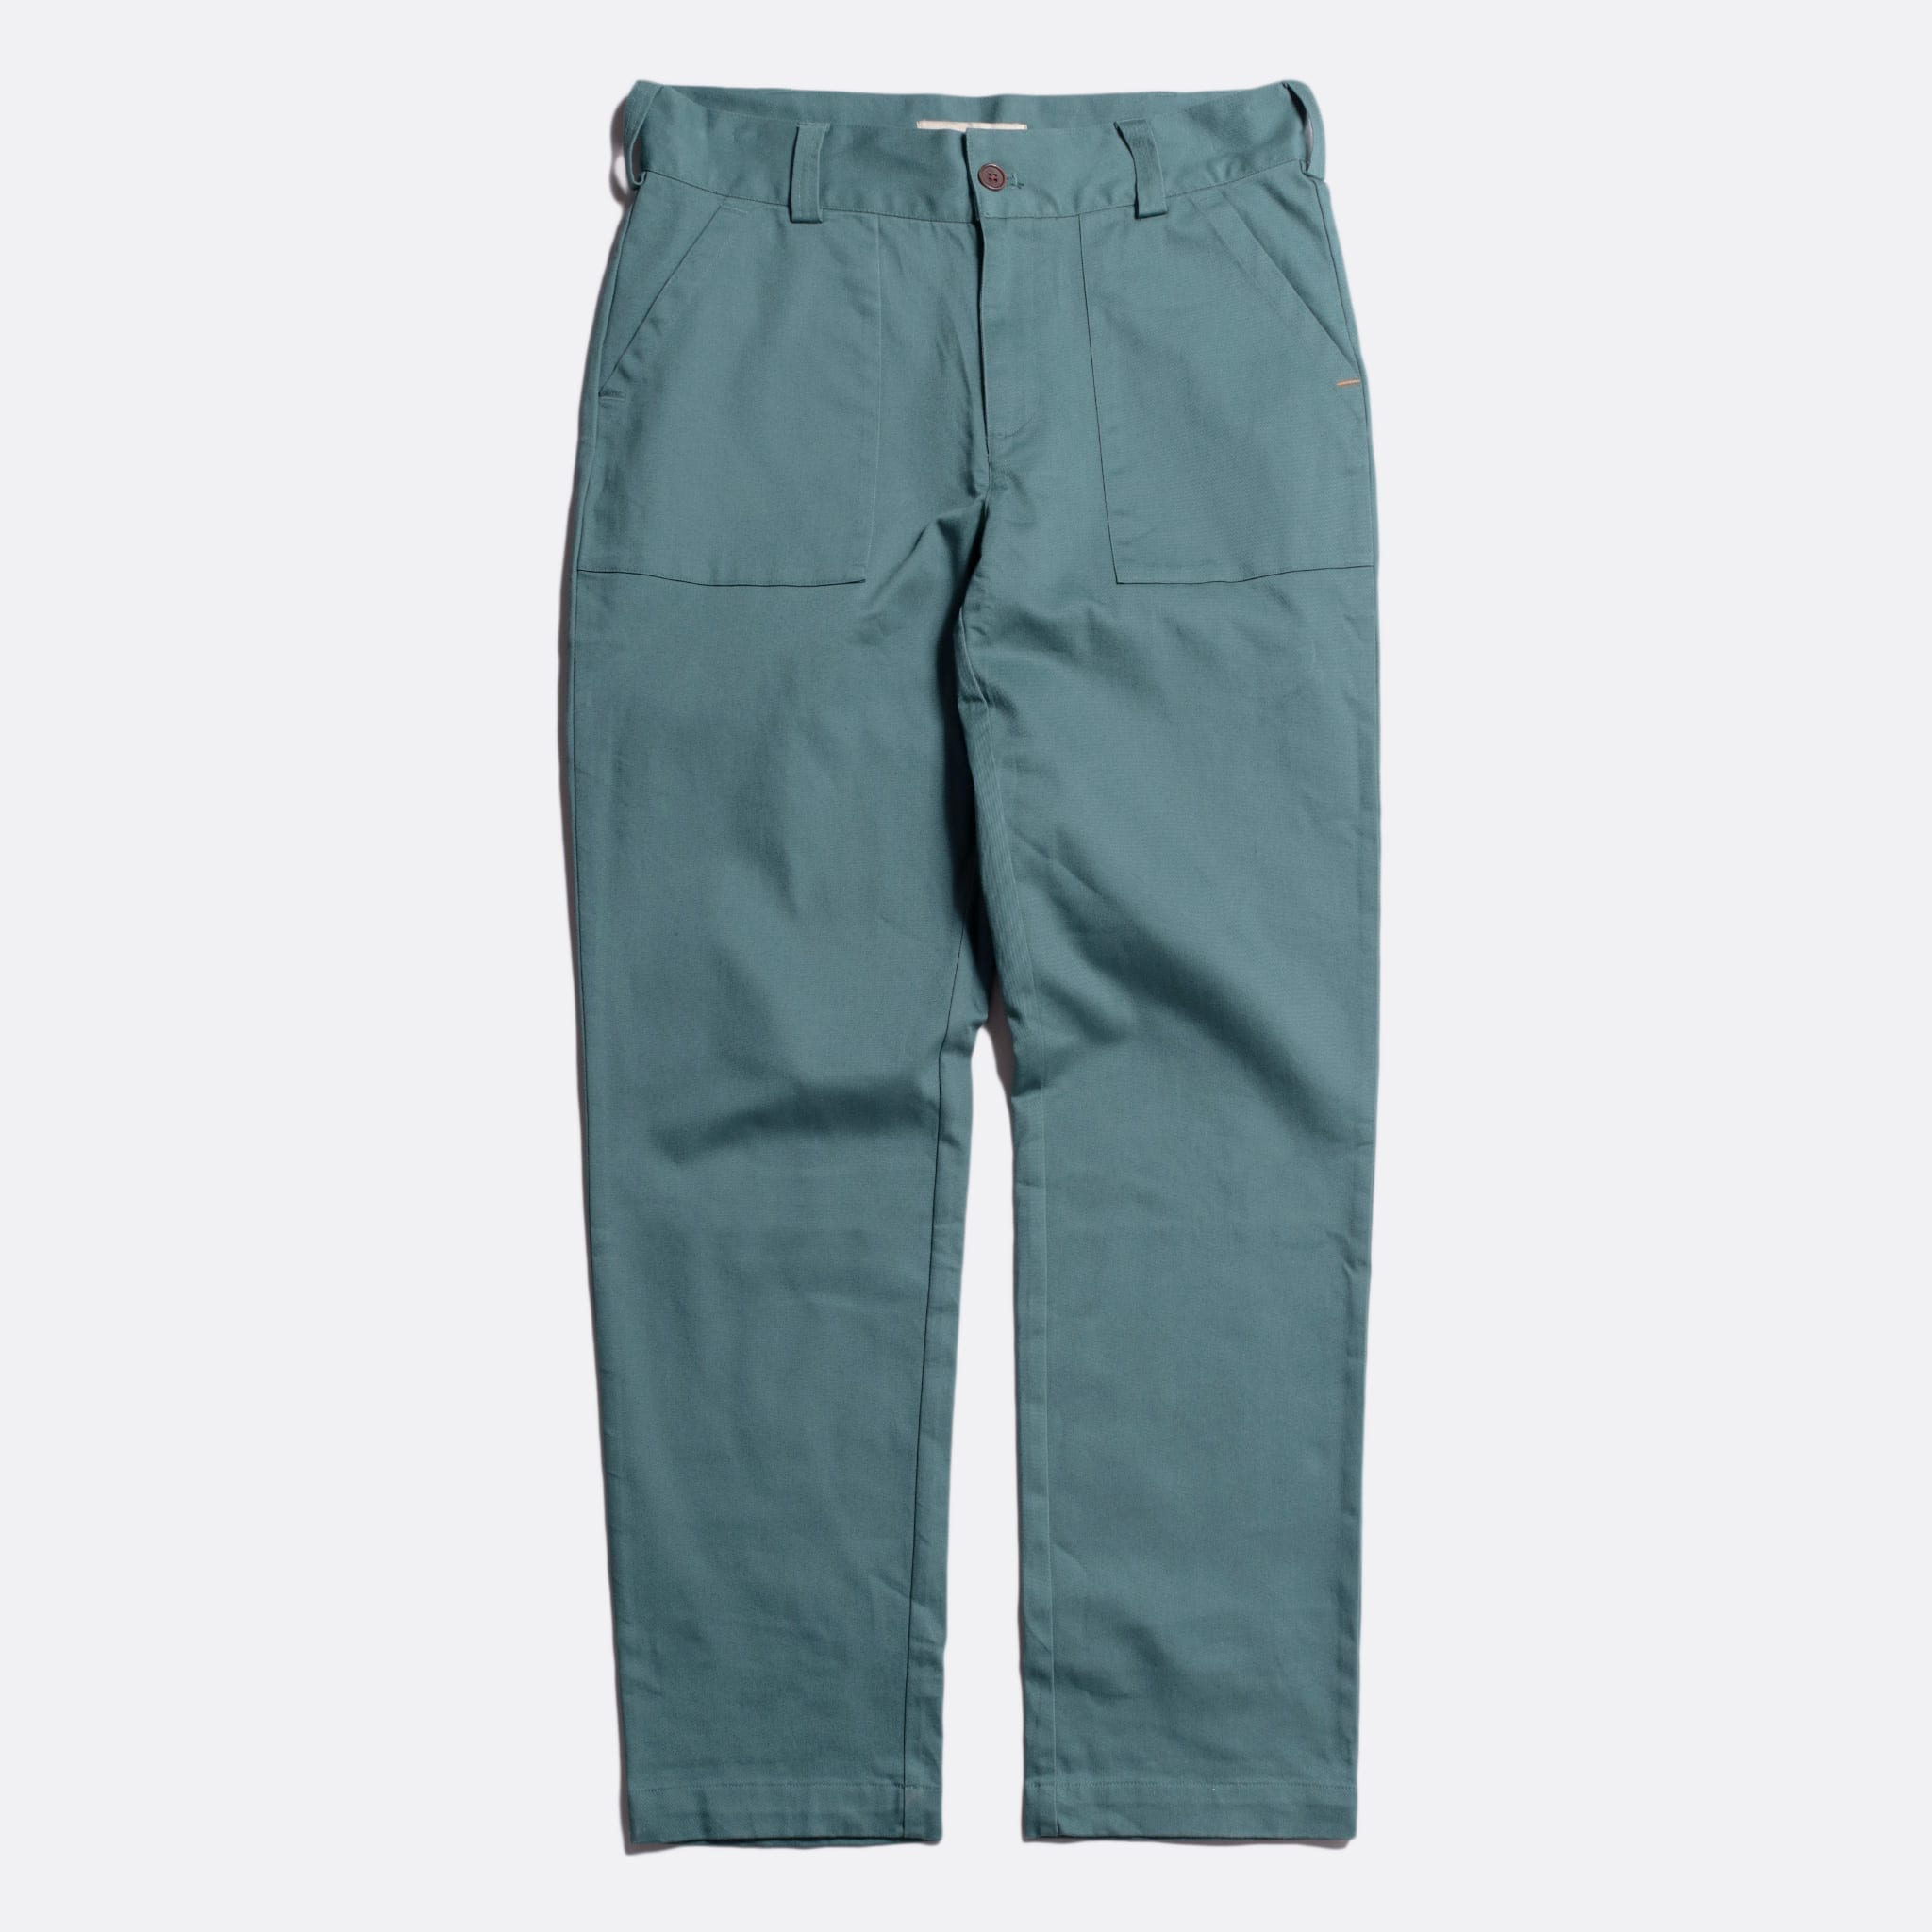 Far Afield Coup Trousers a Sagebrush Green Organic Cotton Twill FabricClassic Work